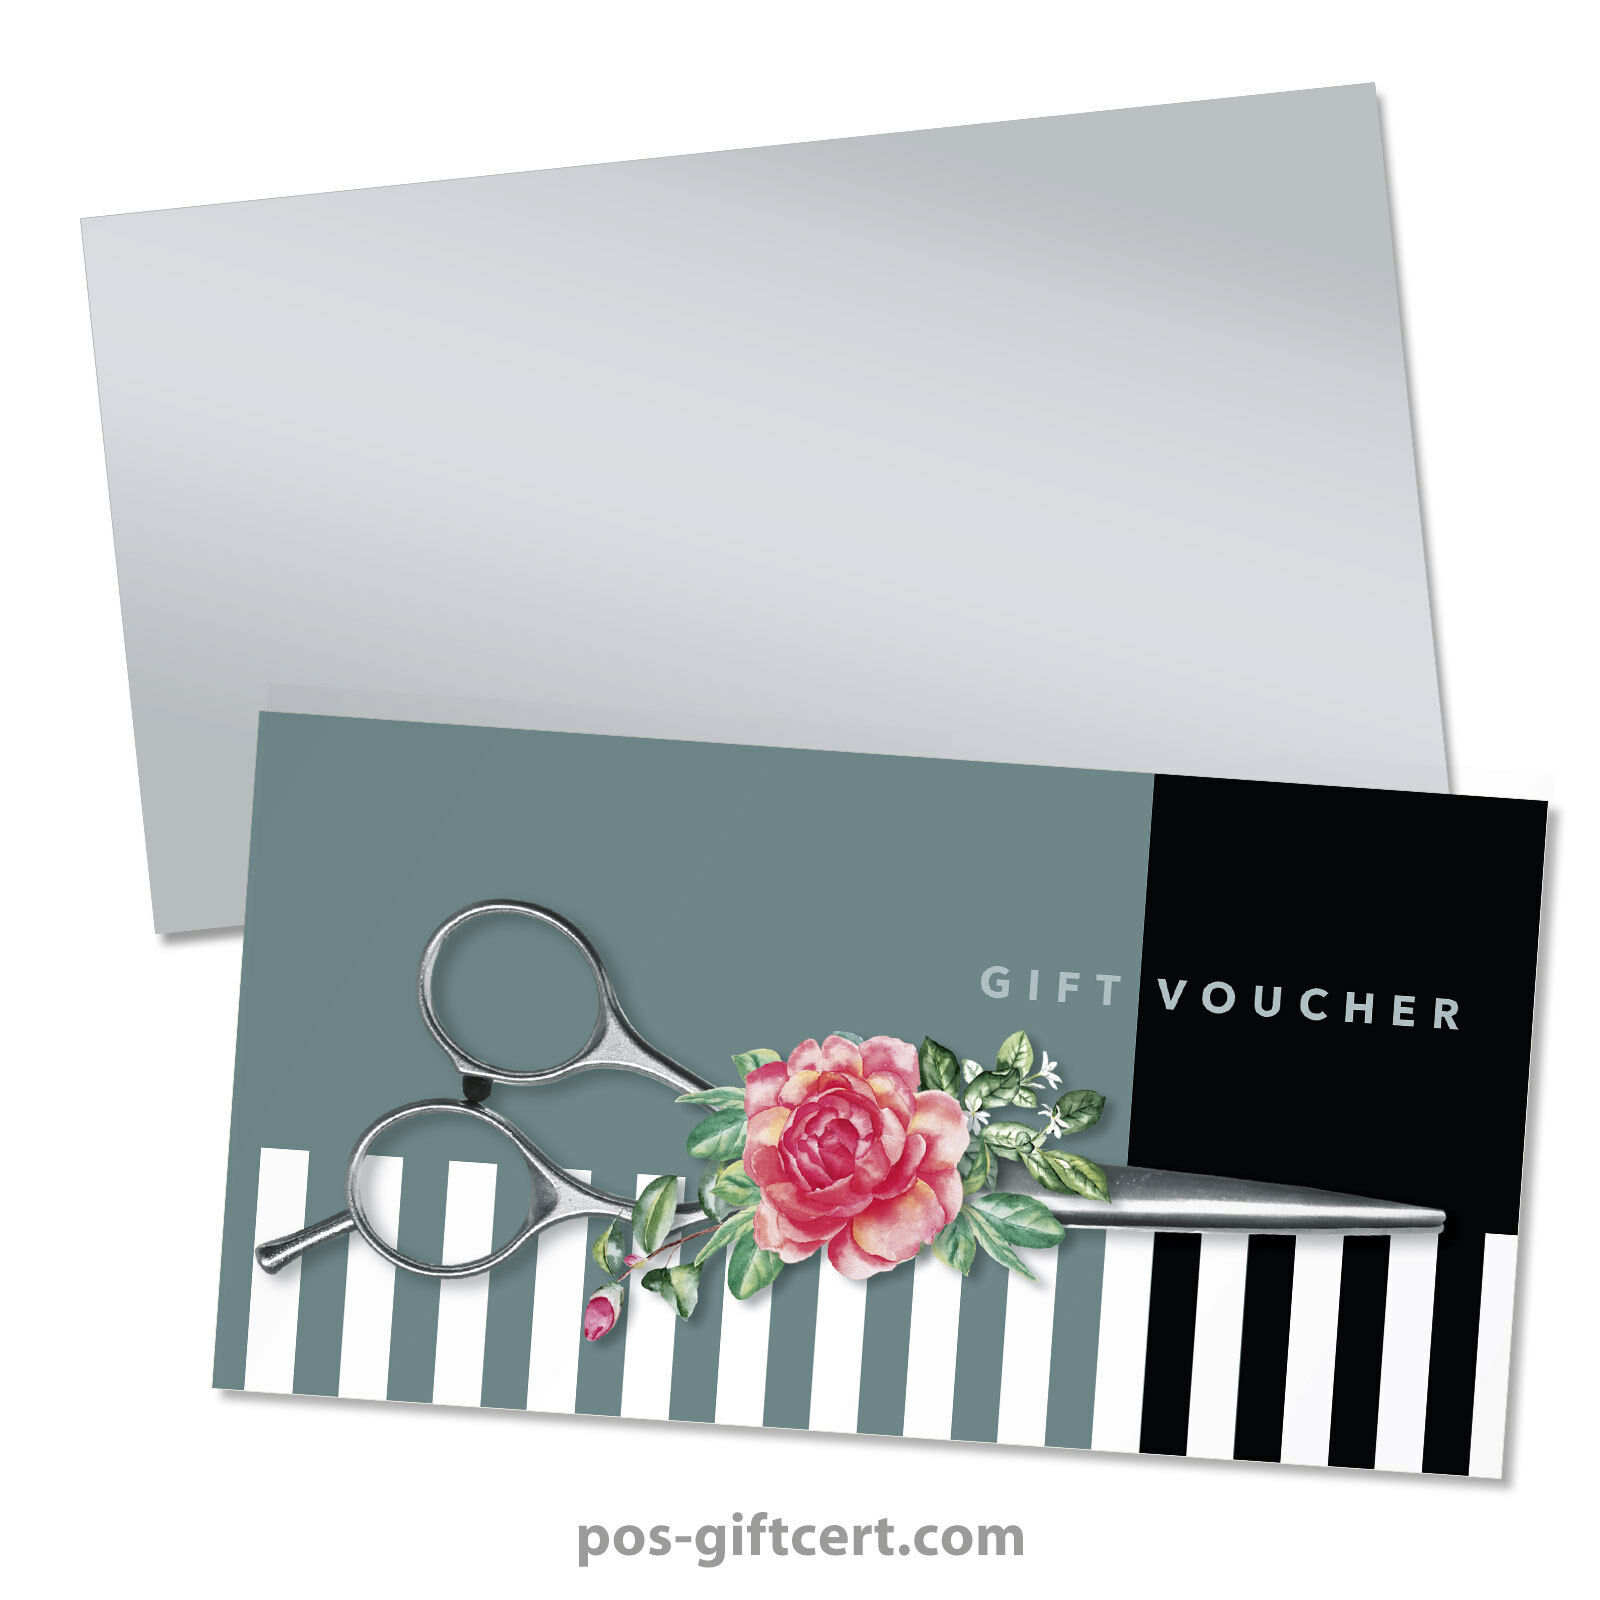 Gift vouchers  envelopes for hair salons, hairdressers, hairstylists K295GB  | Primäre Qualität  | Shopping Online